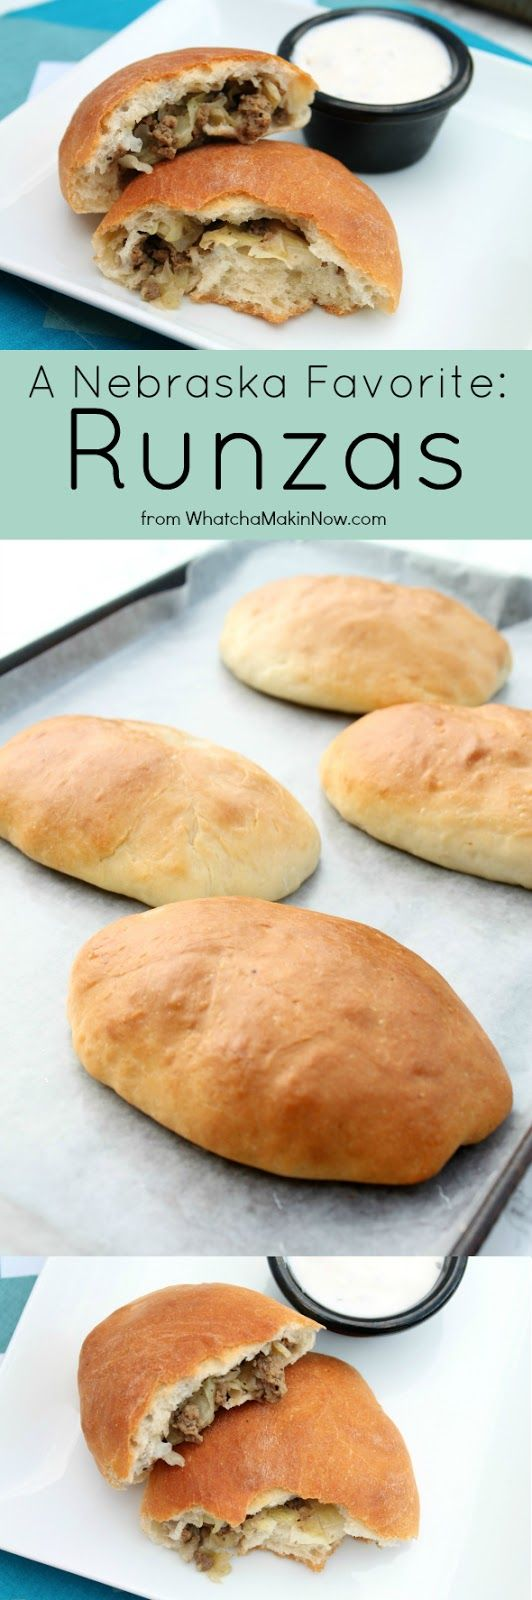 Copycat Recipe: Famous Nebraska Runza Sandwiches - cracked the code and these taste so much like the original Runza!